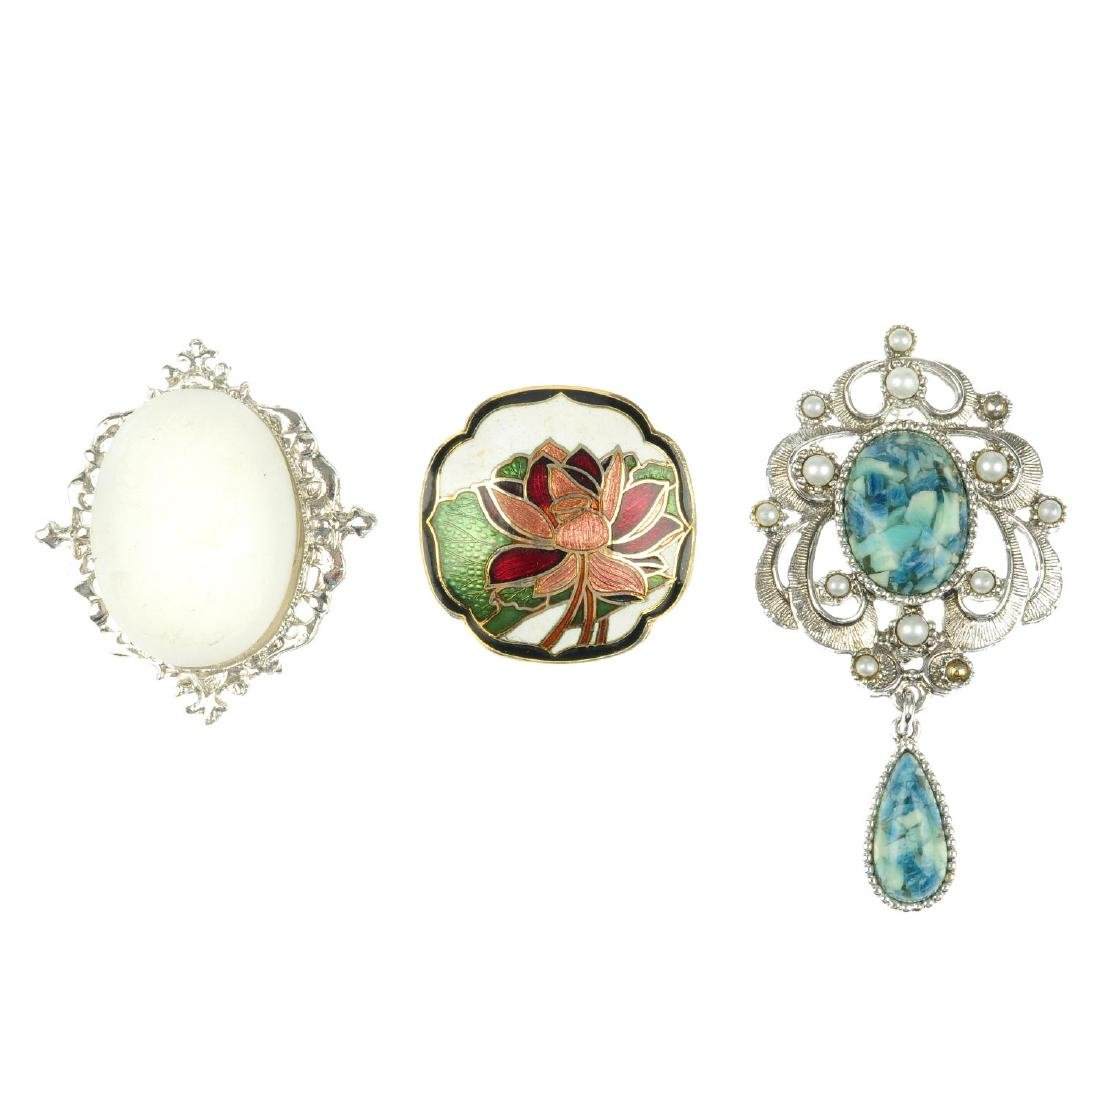 A selection of costume jewellery brooches. To include a